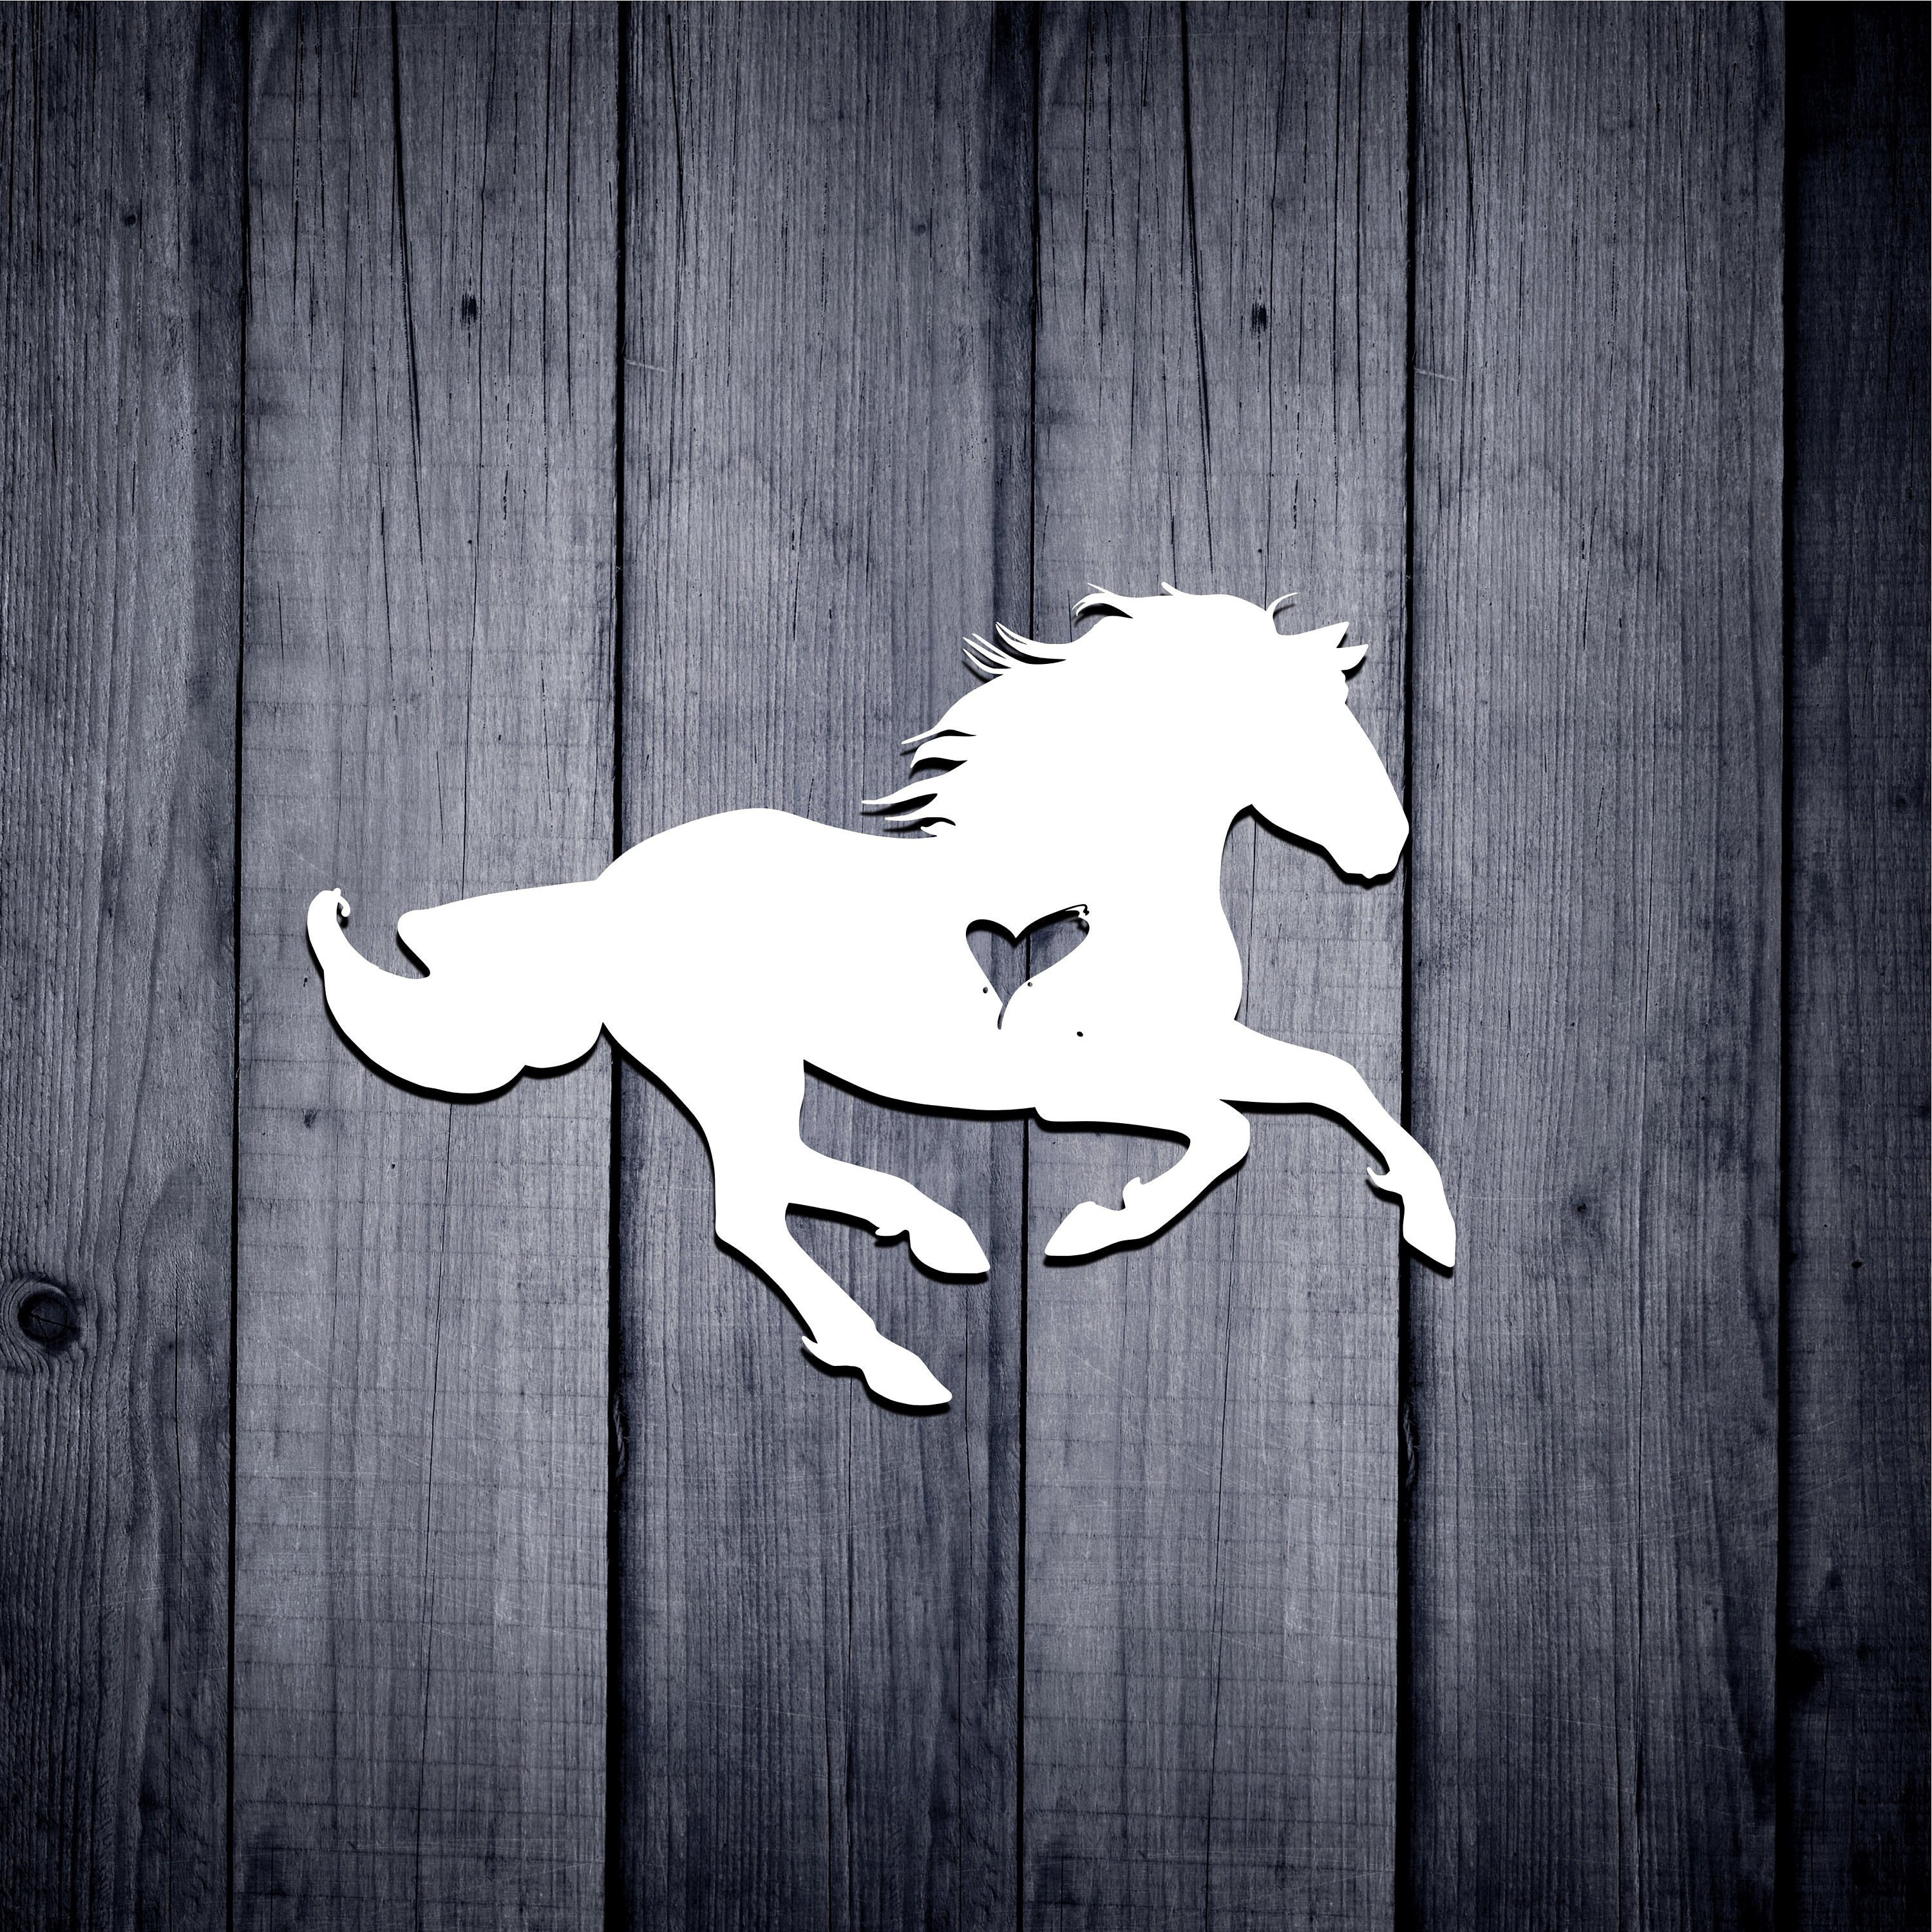 Horse Svg Running Horse Svg Recommended For Projects 10 Inches